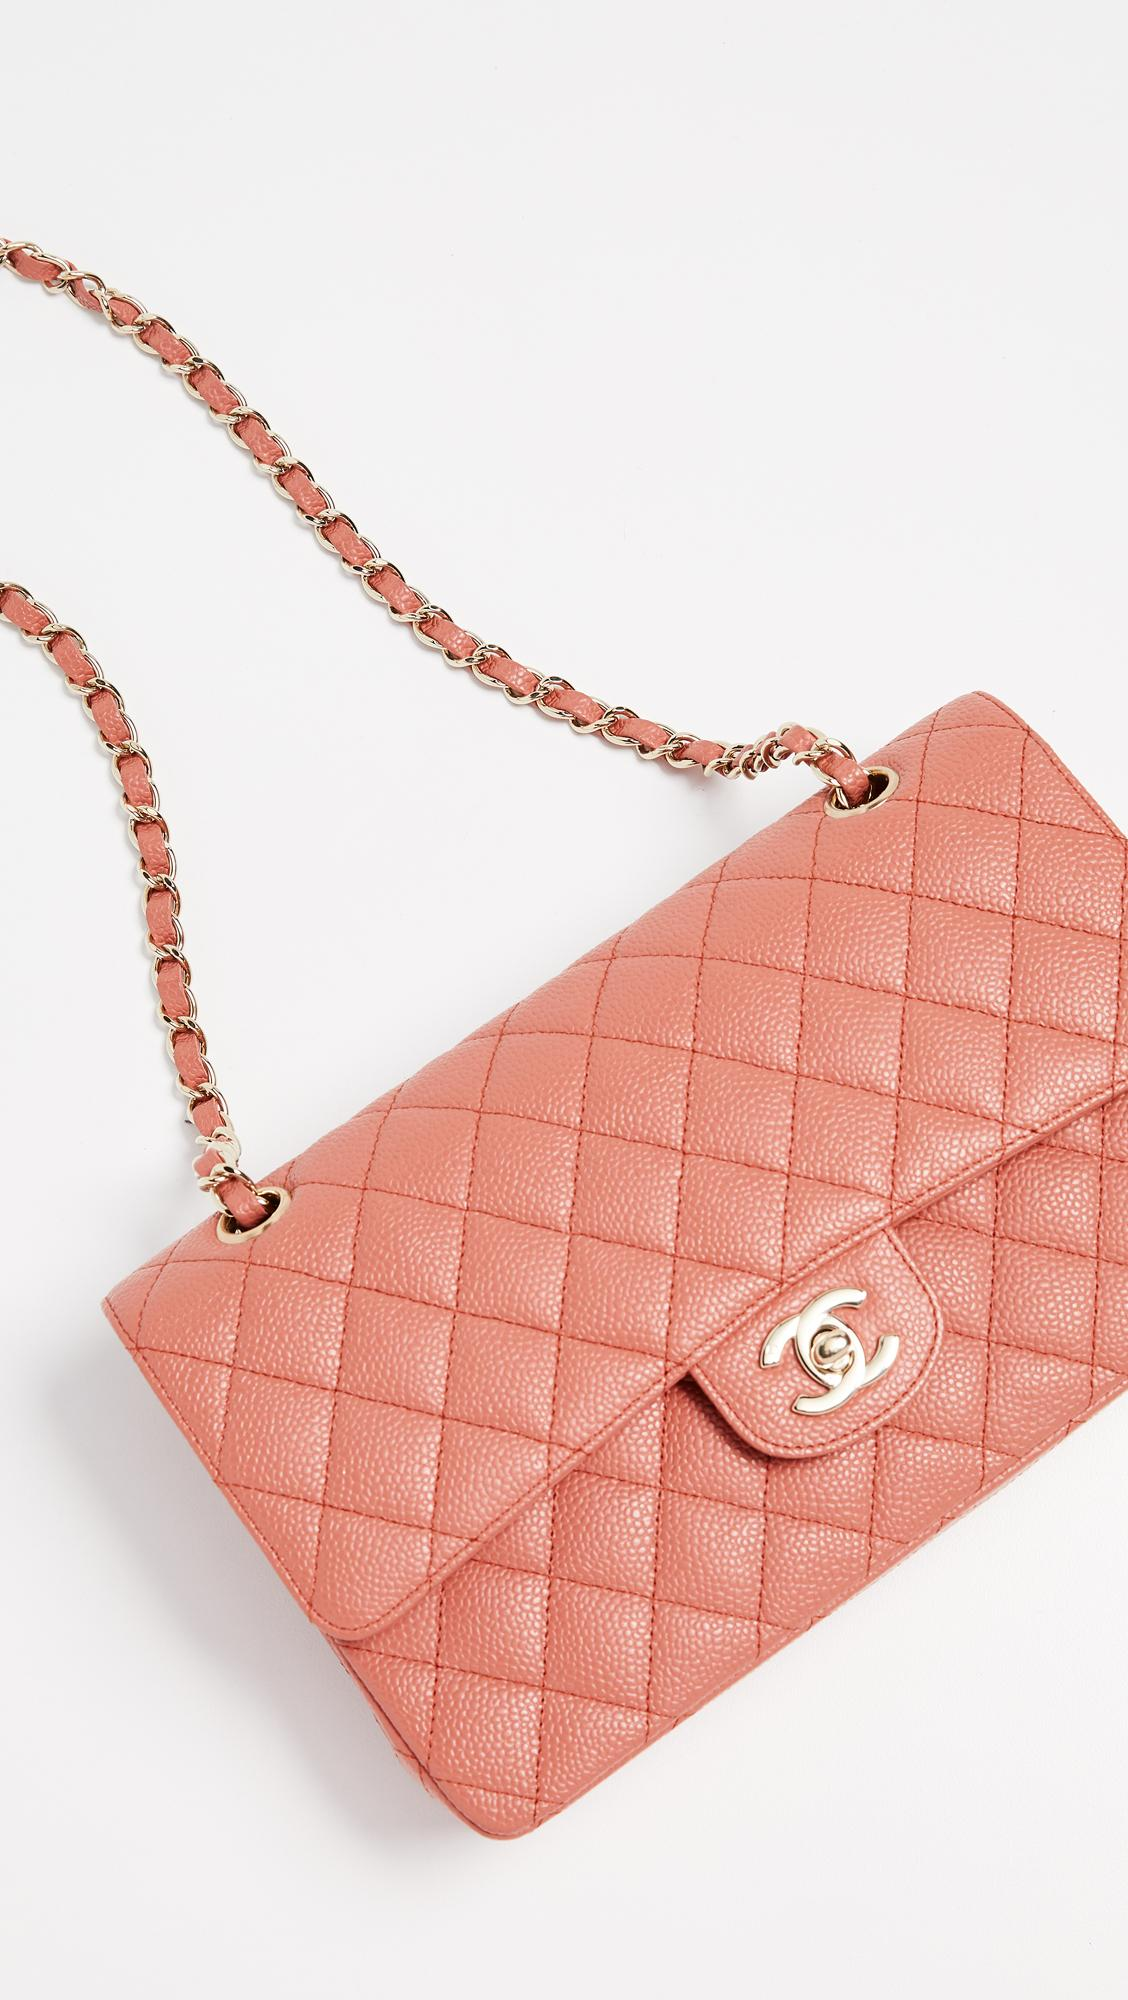 64832e2d03f6 What Goes Around Comes Around Chanel Pink Caviar Shoulder Bag in ...